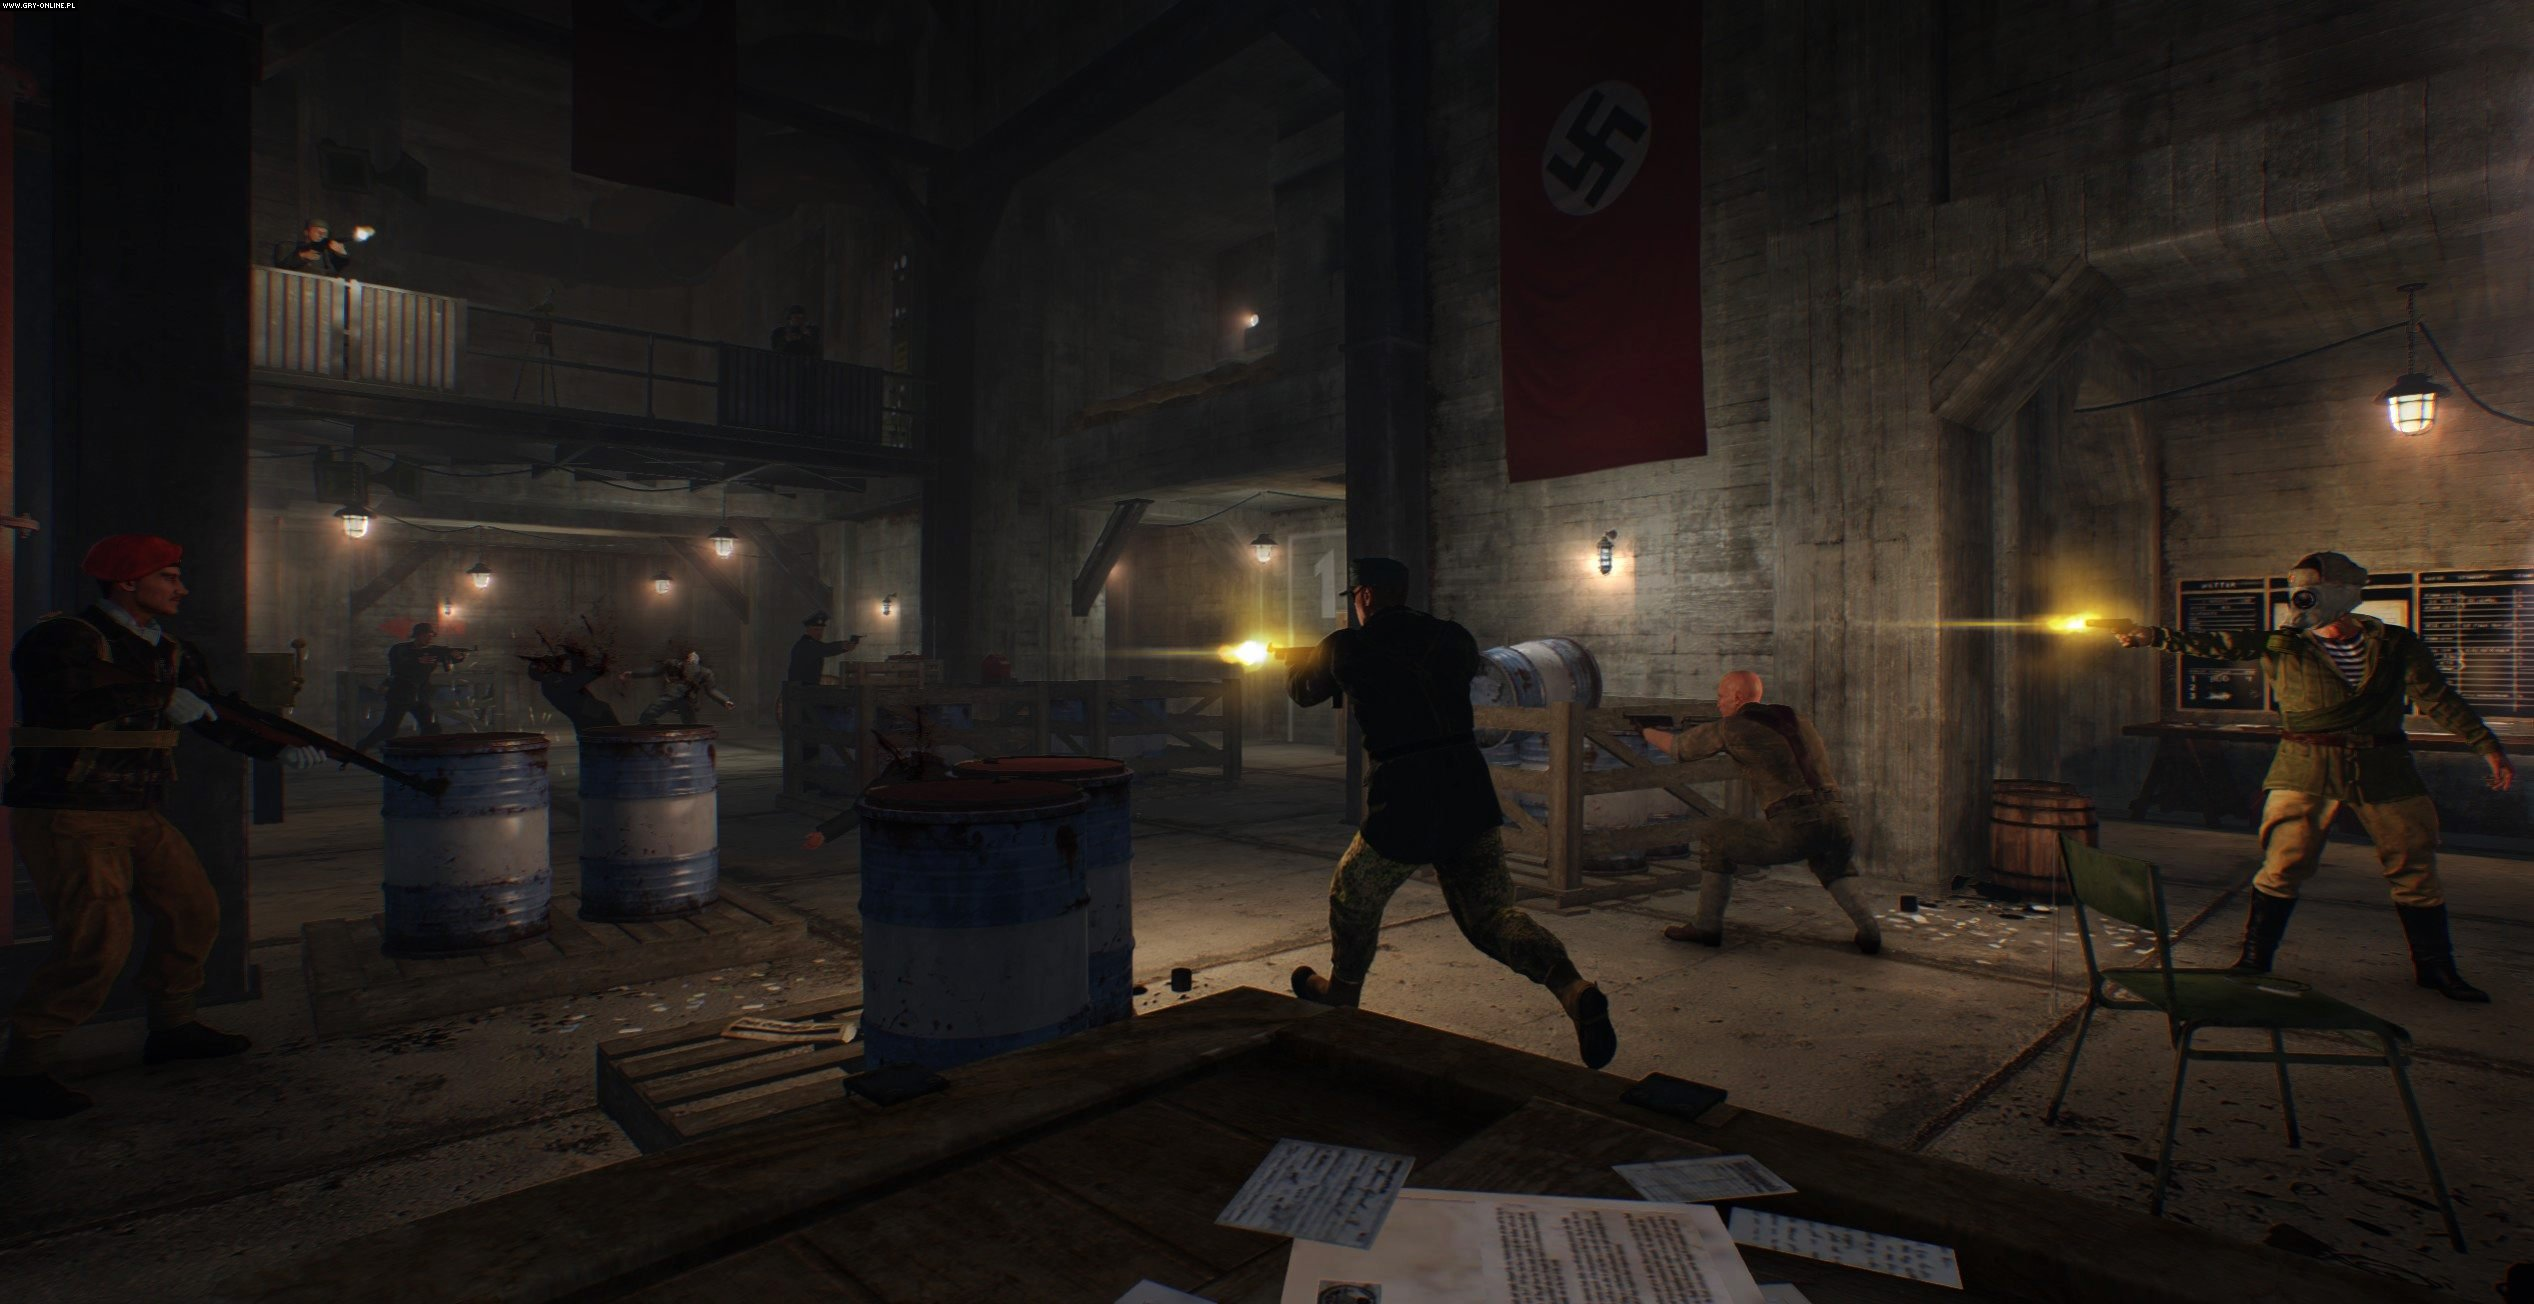 RAID: World War II PC, PS4, XONE Games Image 8/8, Lion Game Lion, Starbreeze AB